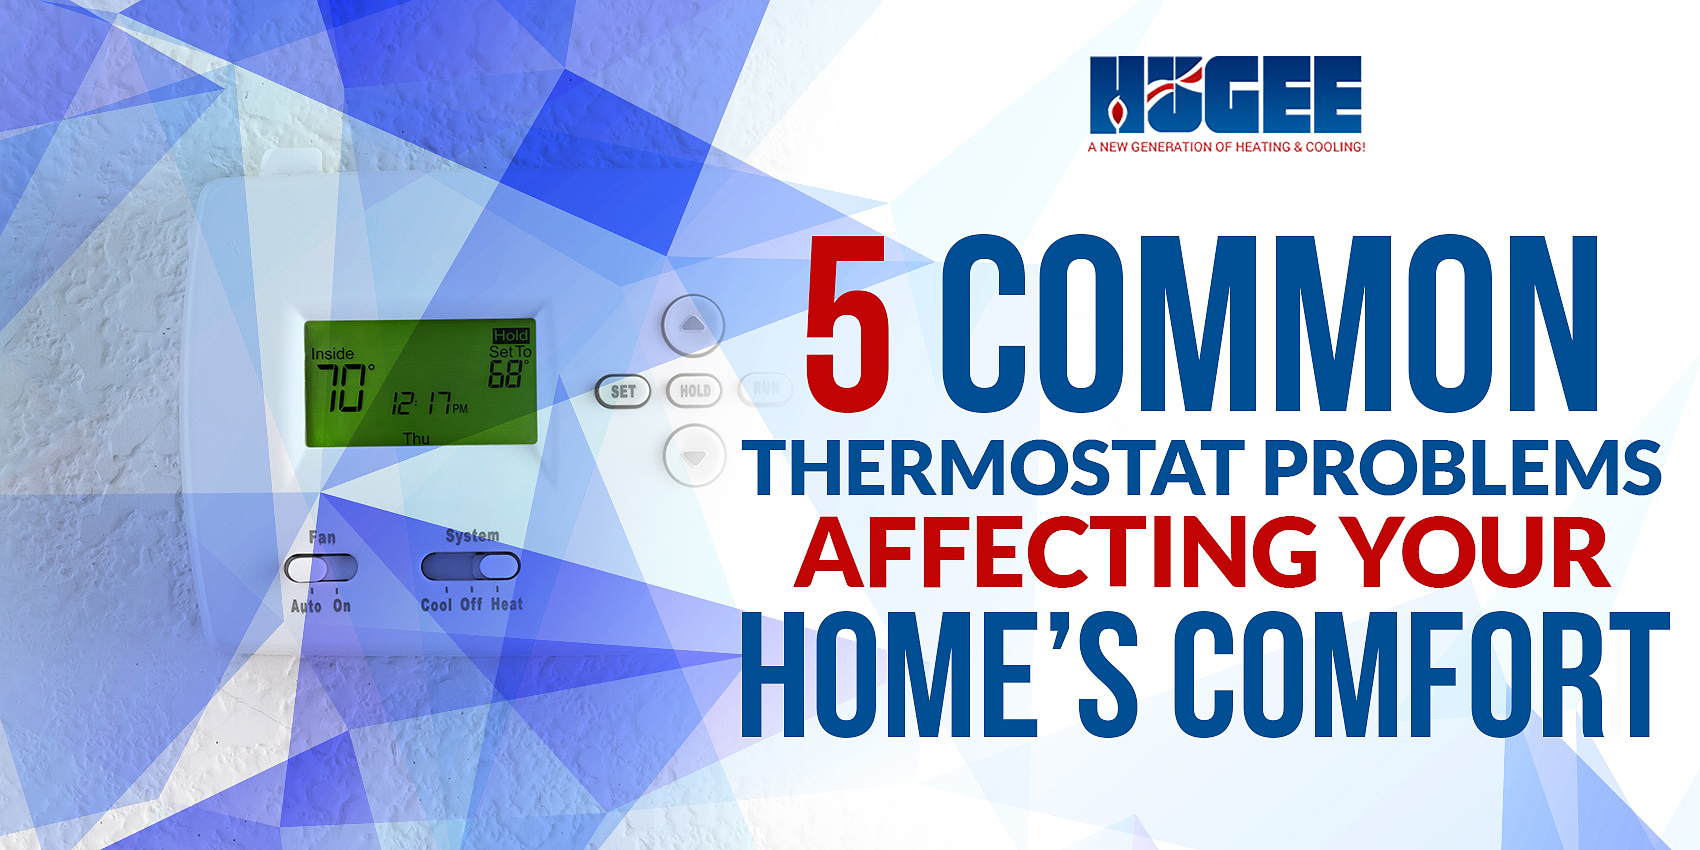 5 Common Thermostat Problems Affecting Your Home's Comfort